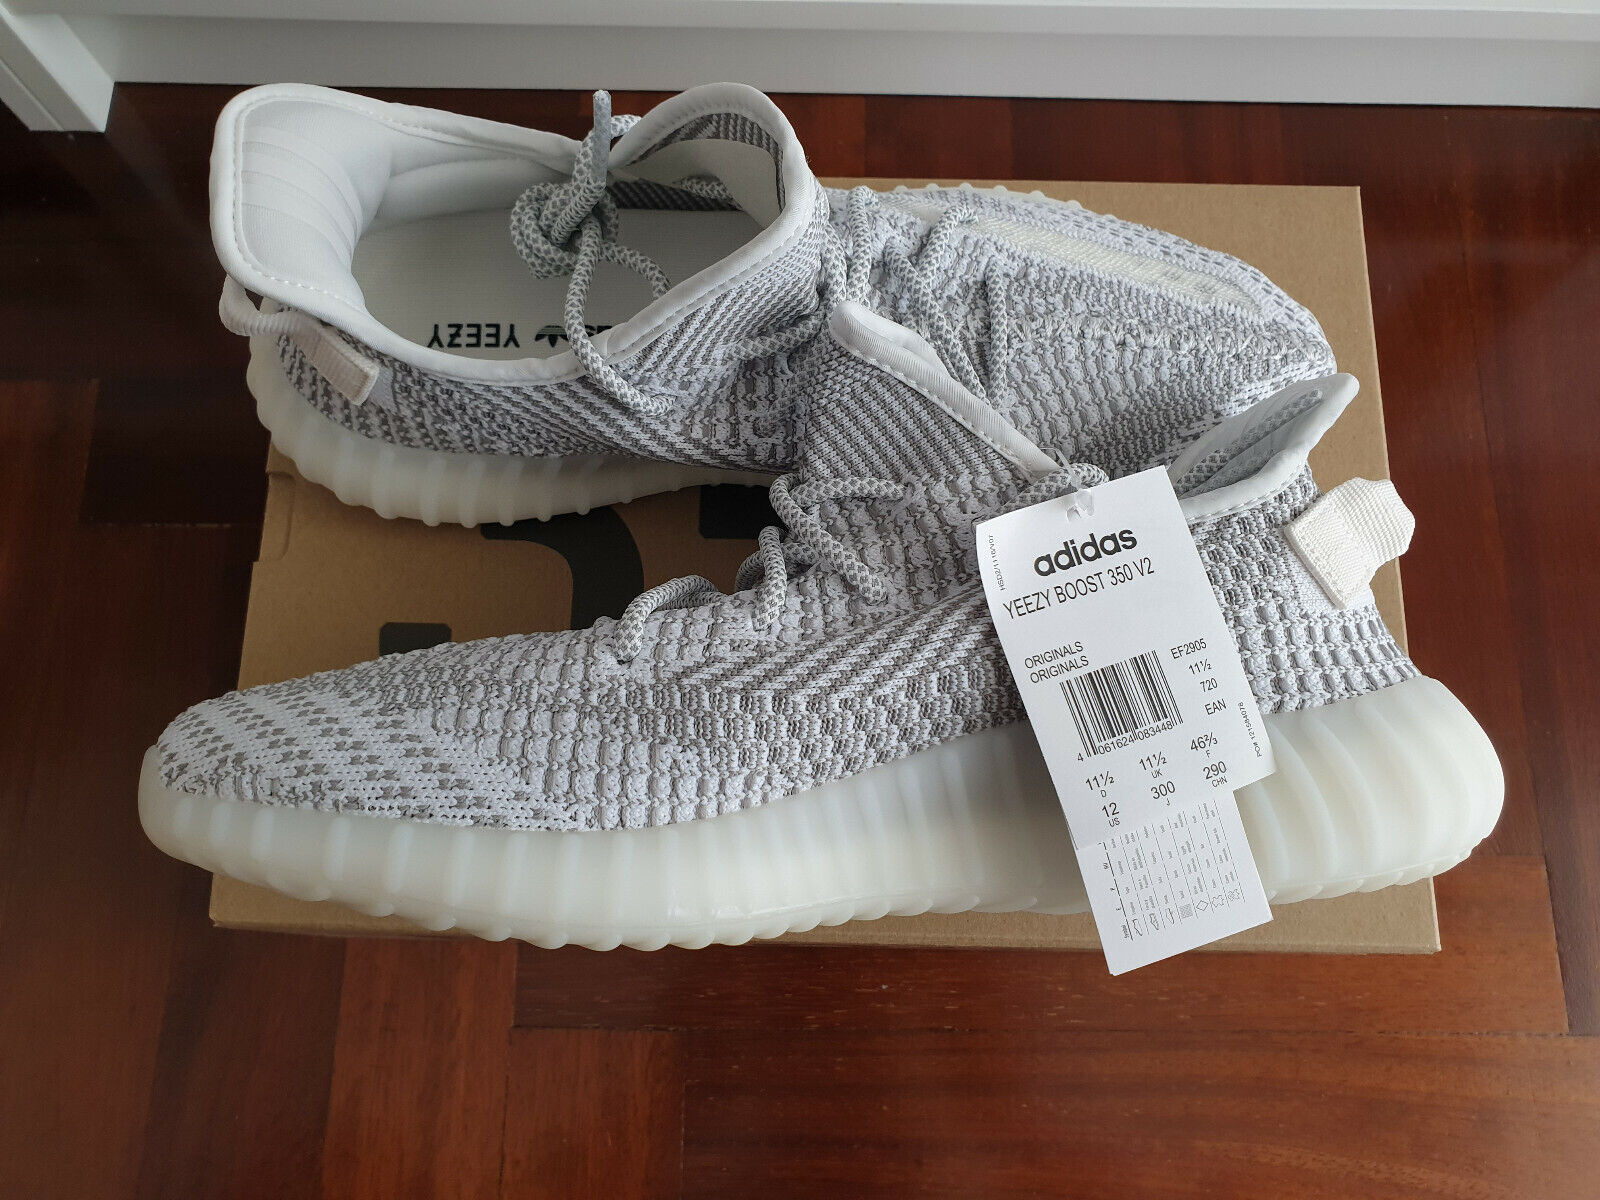 Adidas YEEZY BOOST 350 V2 STATIC NONREFLECTIVE Limited Edition Dimensione 46 23